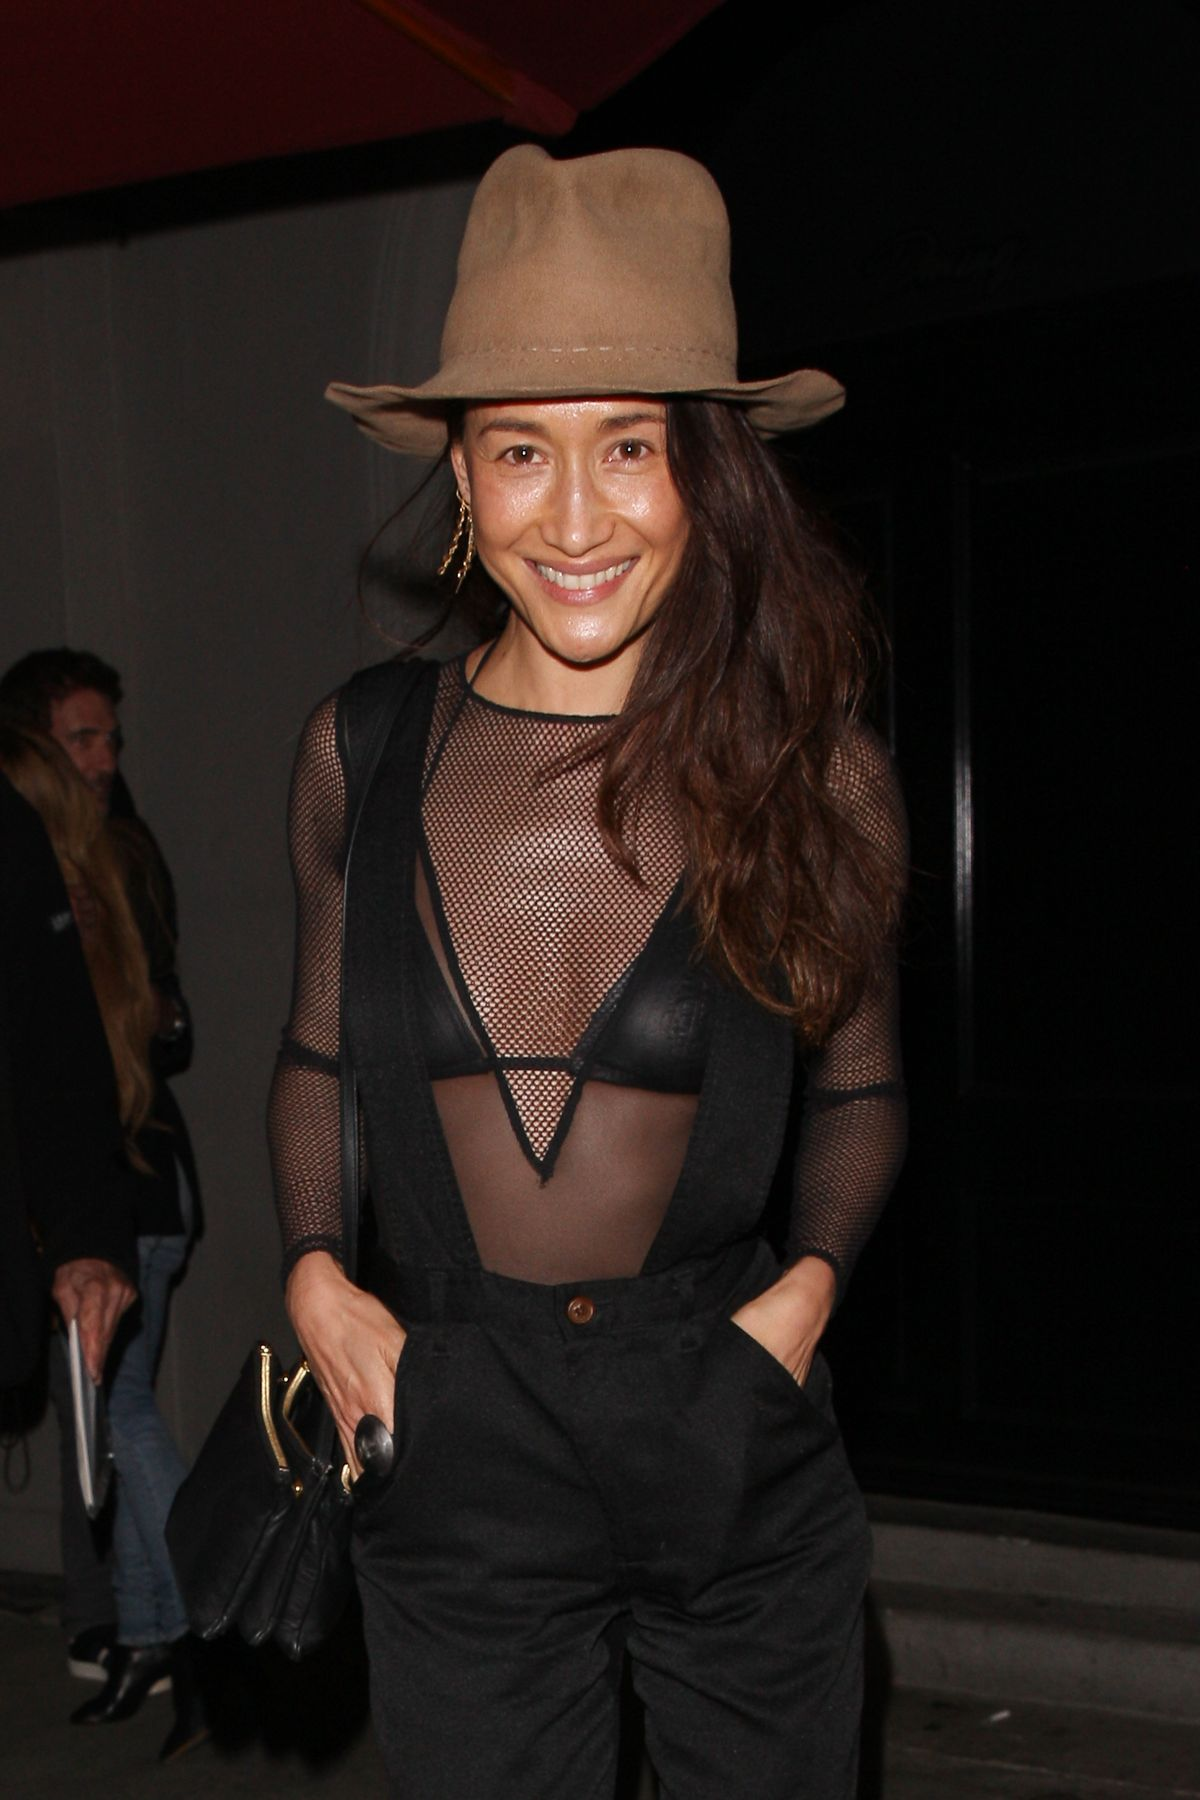 I Took Stunning Photo Of Dylan At >> Maggie Q Looks Stunning As She And Dylan Mcdermott Are All Smiles As